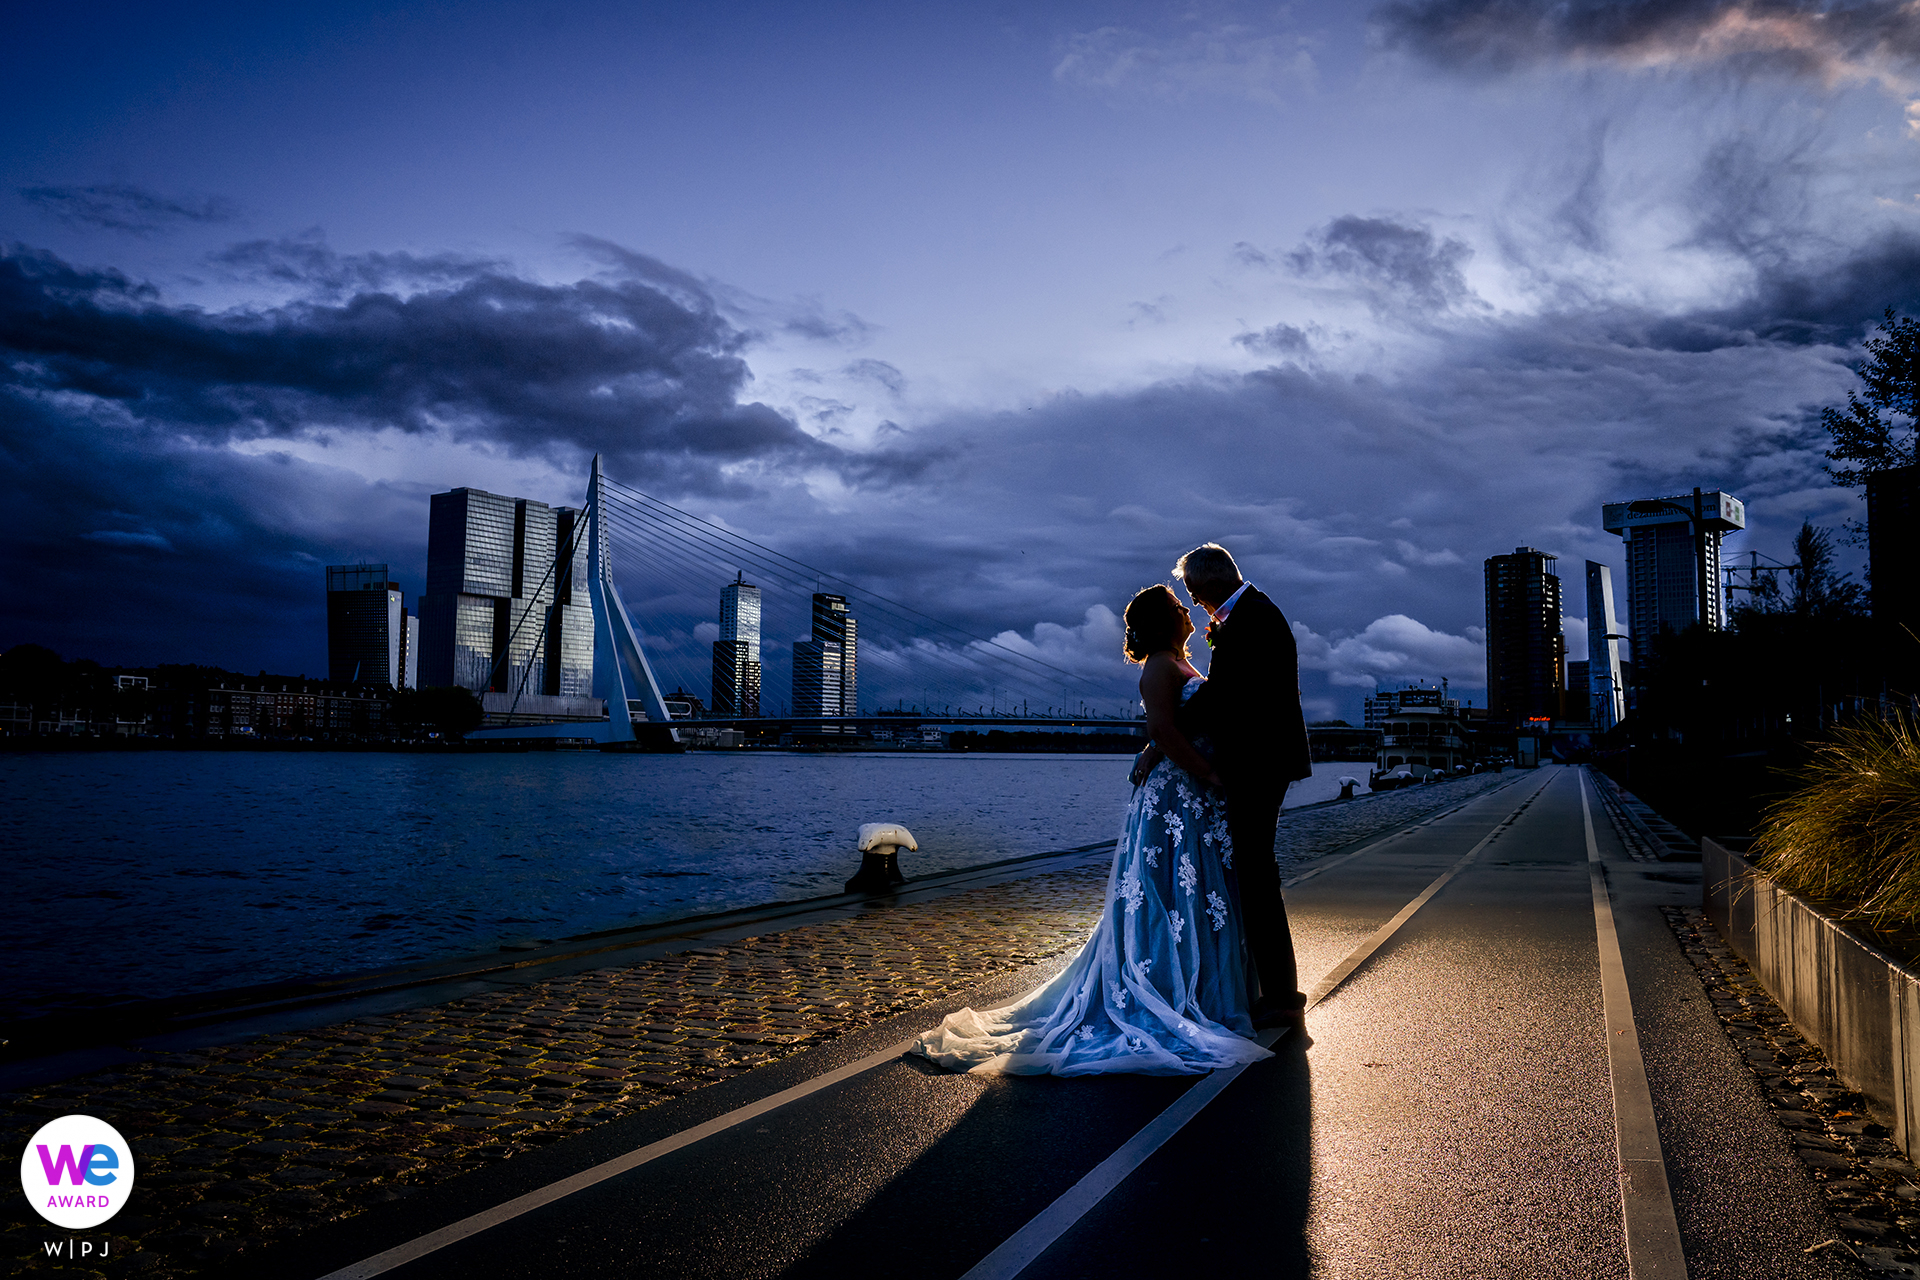 Professional Rotterdam Wedding Portrait of The bride and groom posing for a romantic image during blue hour